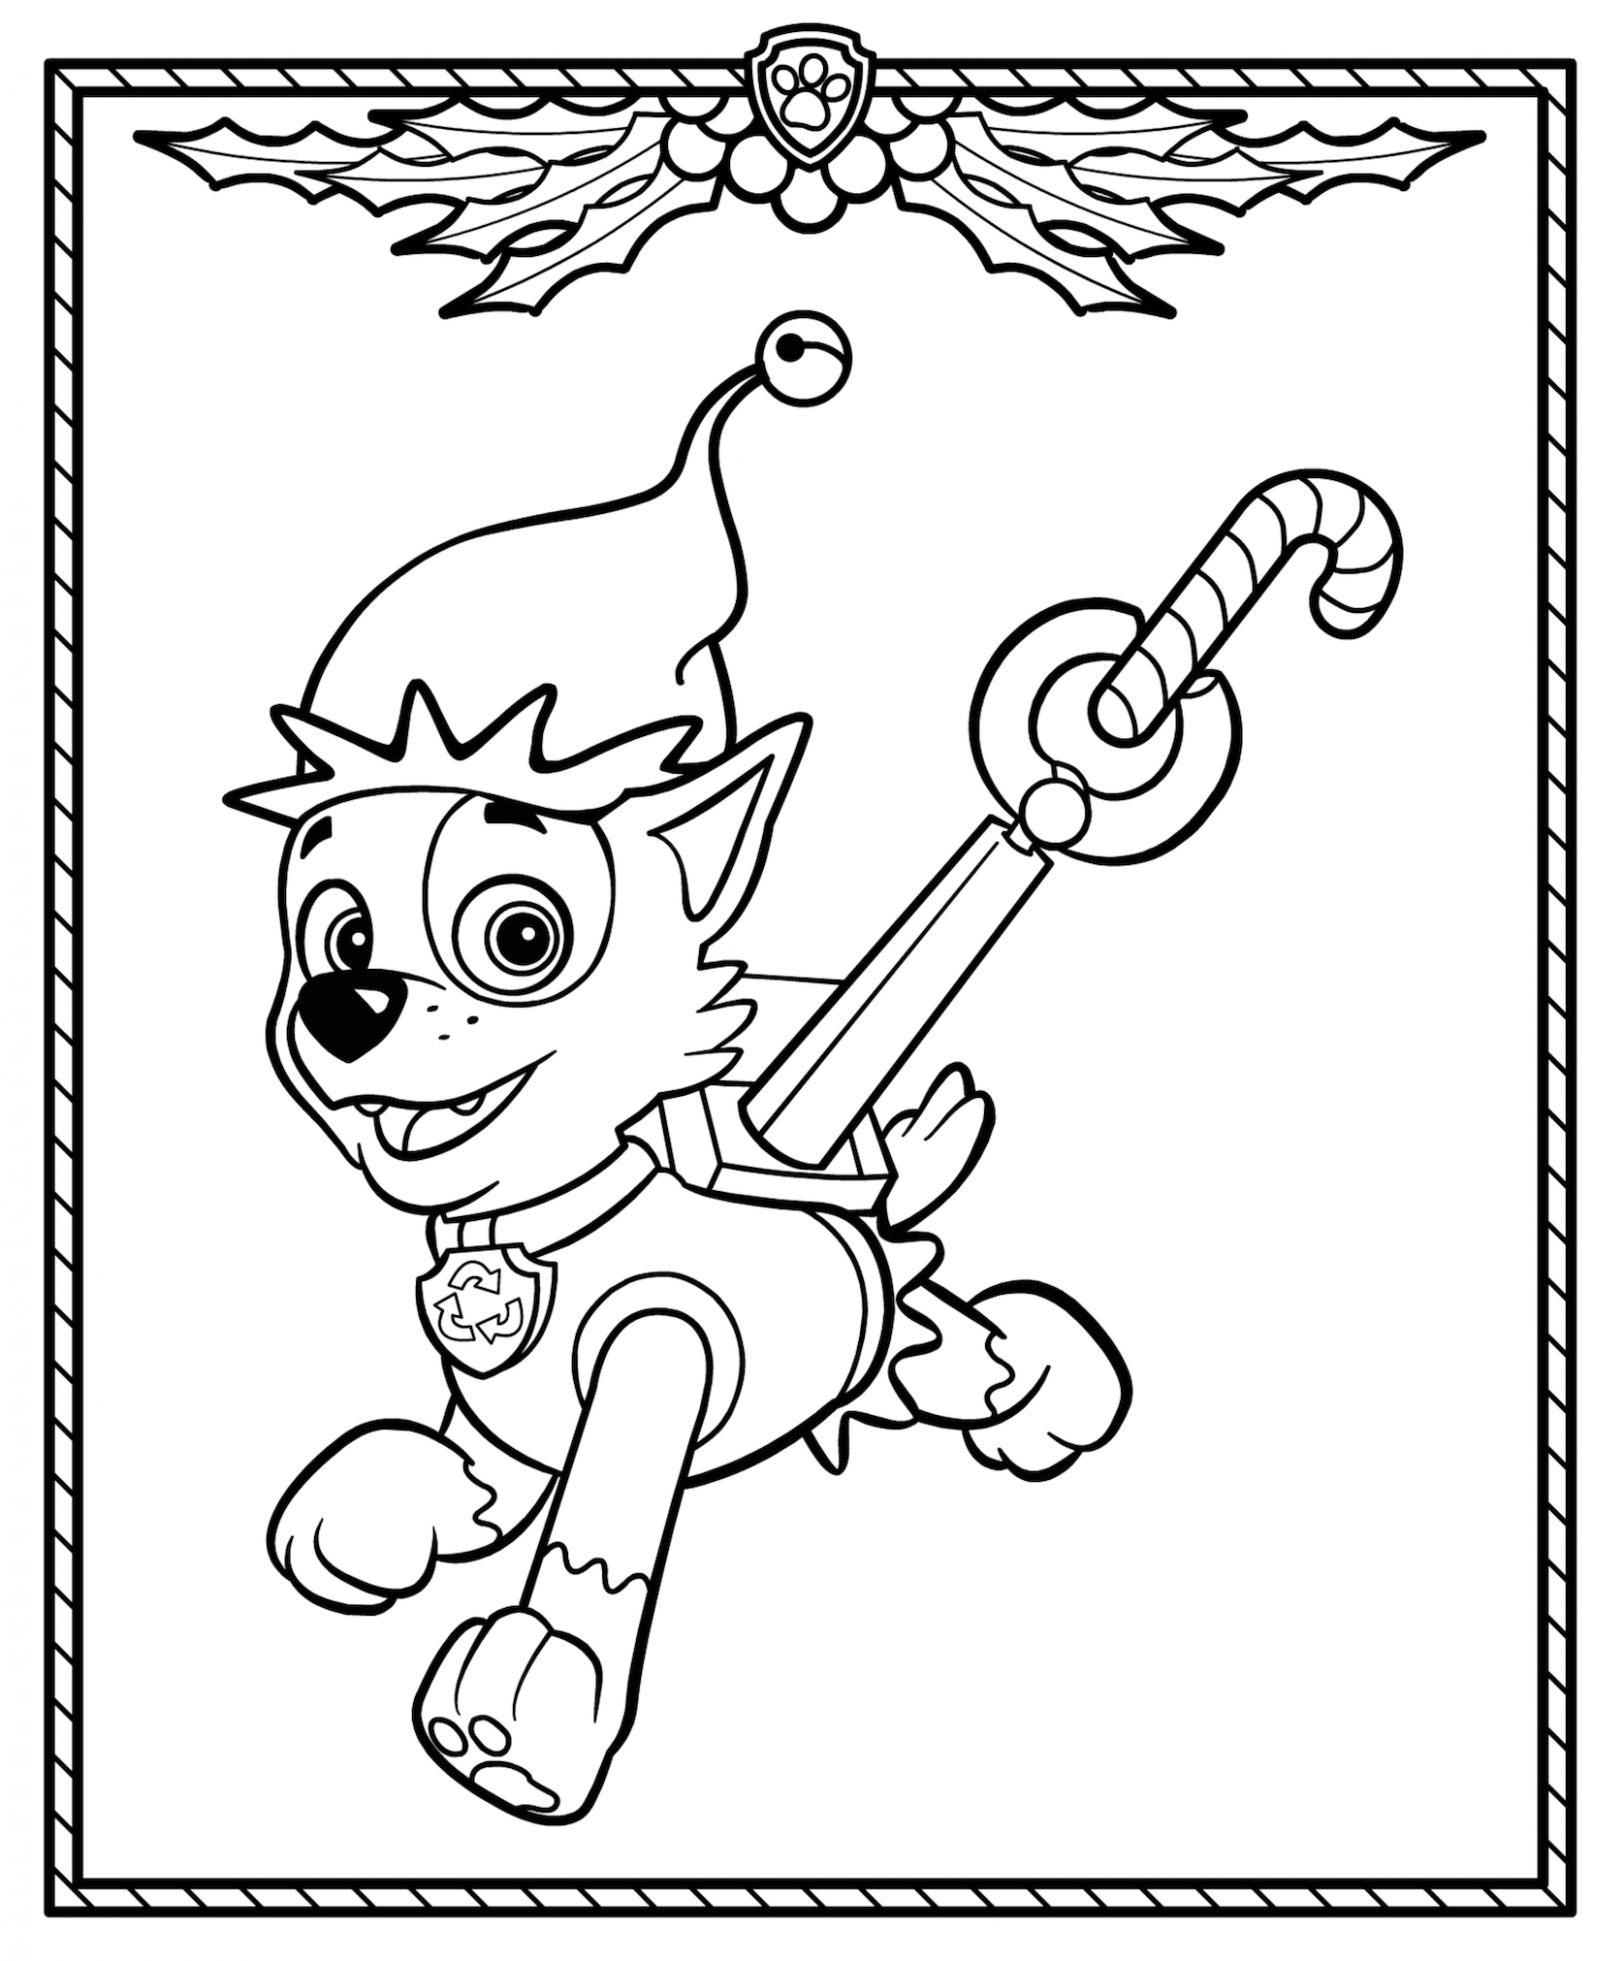 Christmas Coloring Pages | color pages | Christmas coloring pages ...